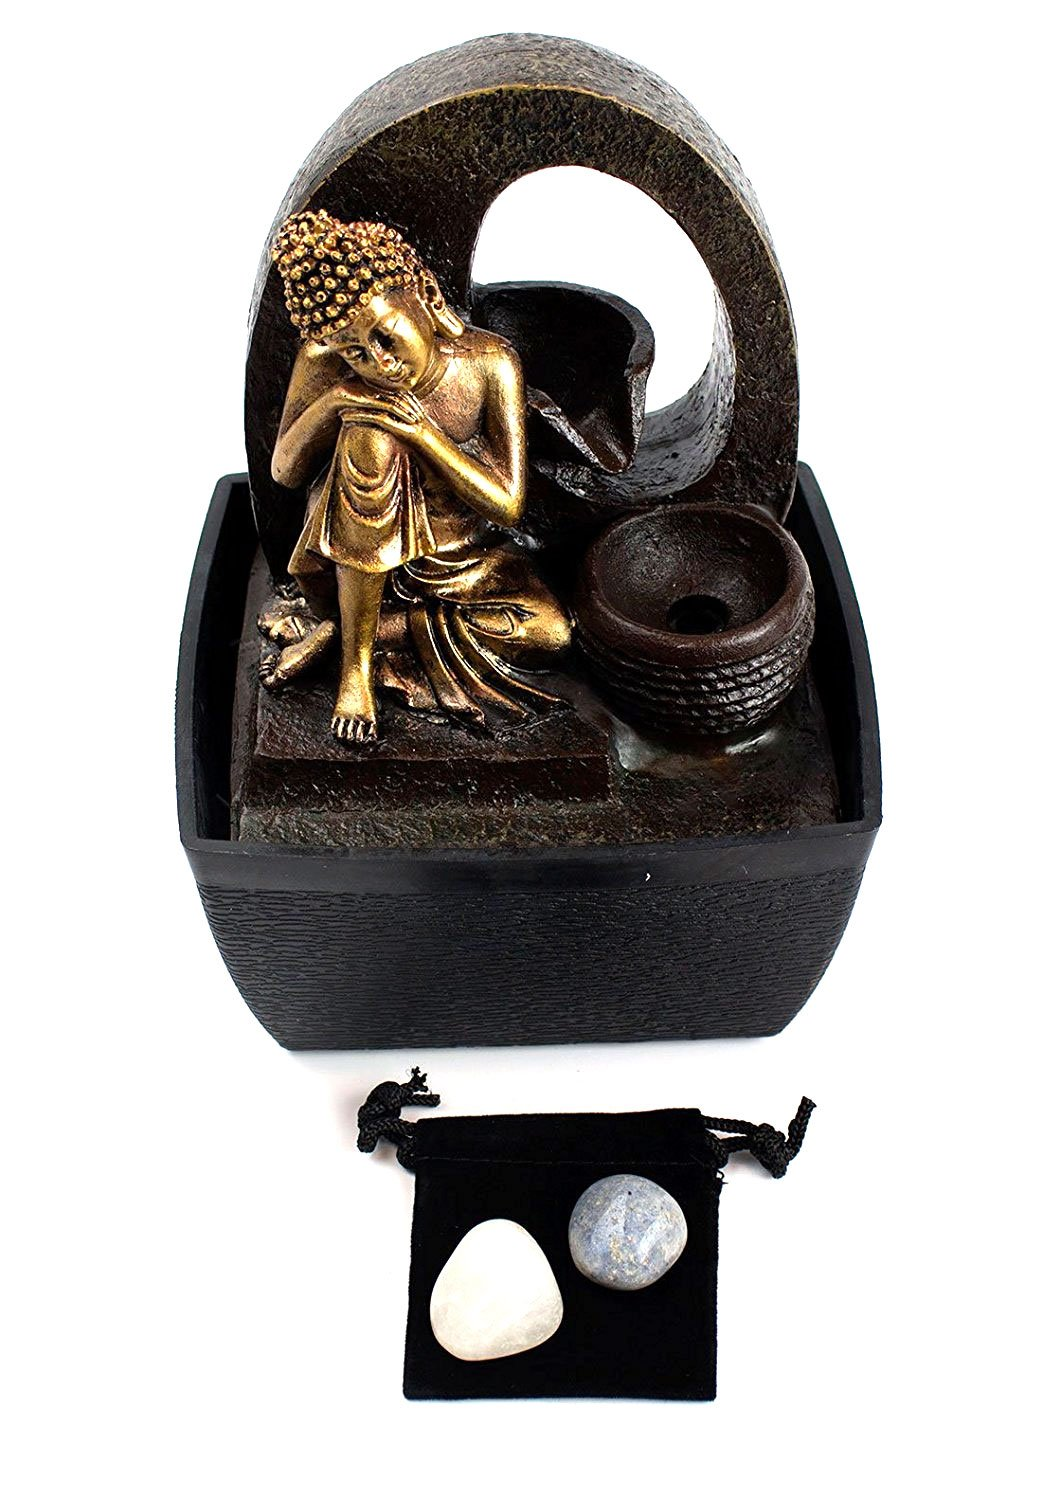 Thoughtful Siddhartha Buddha Tabletop Water Fountain with 2 Healing Stones and Pouch (4 Pc Bundle) 27366 by Imprints Plus